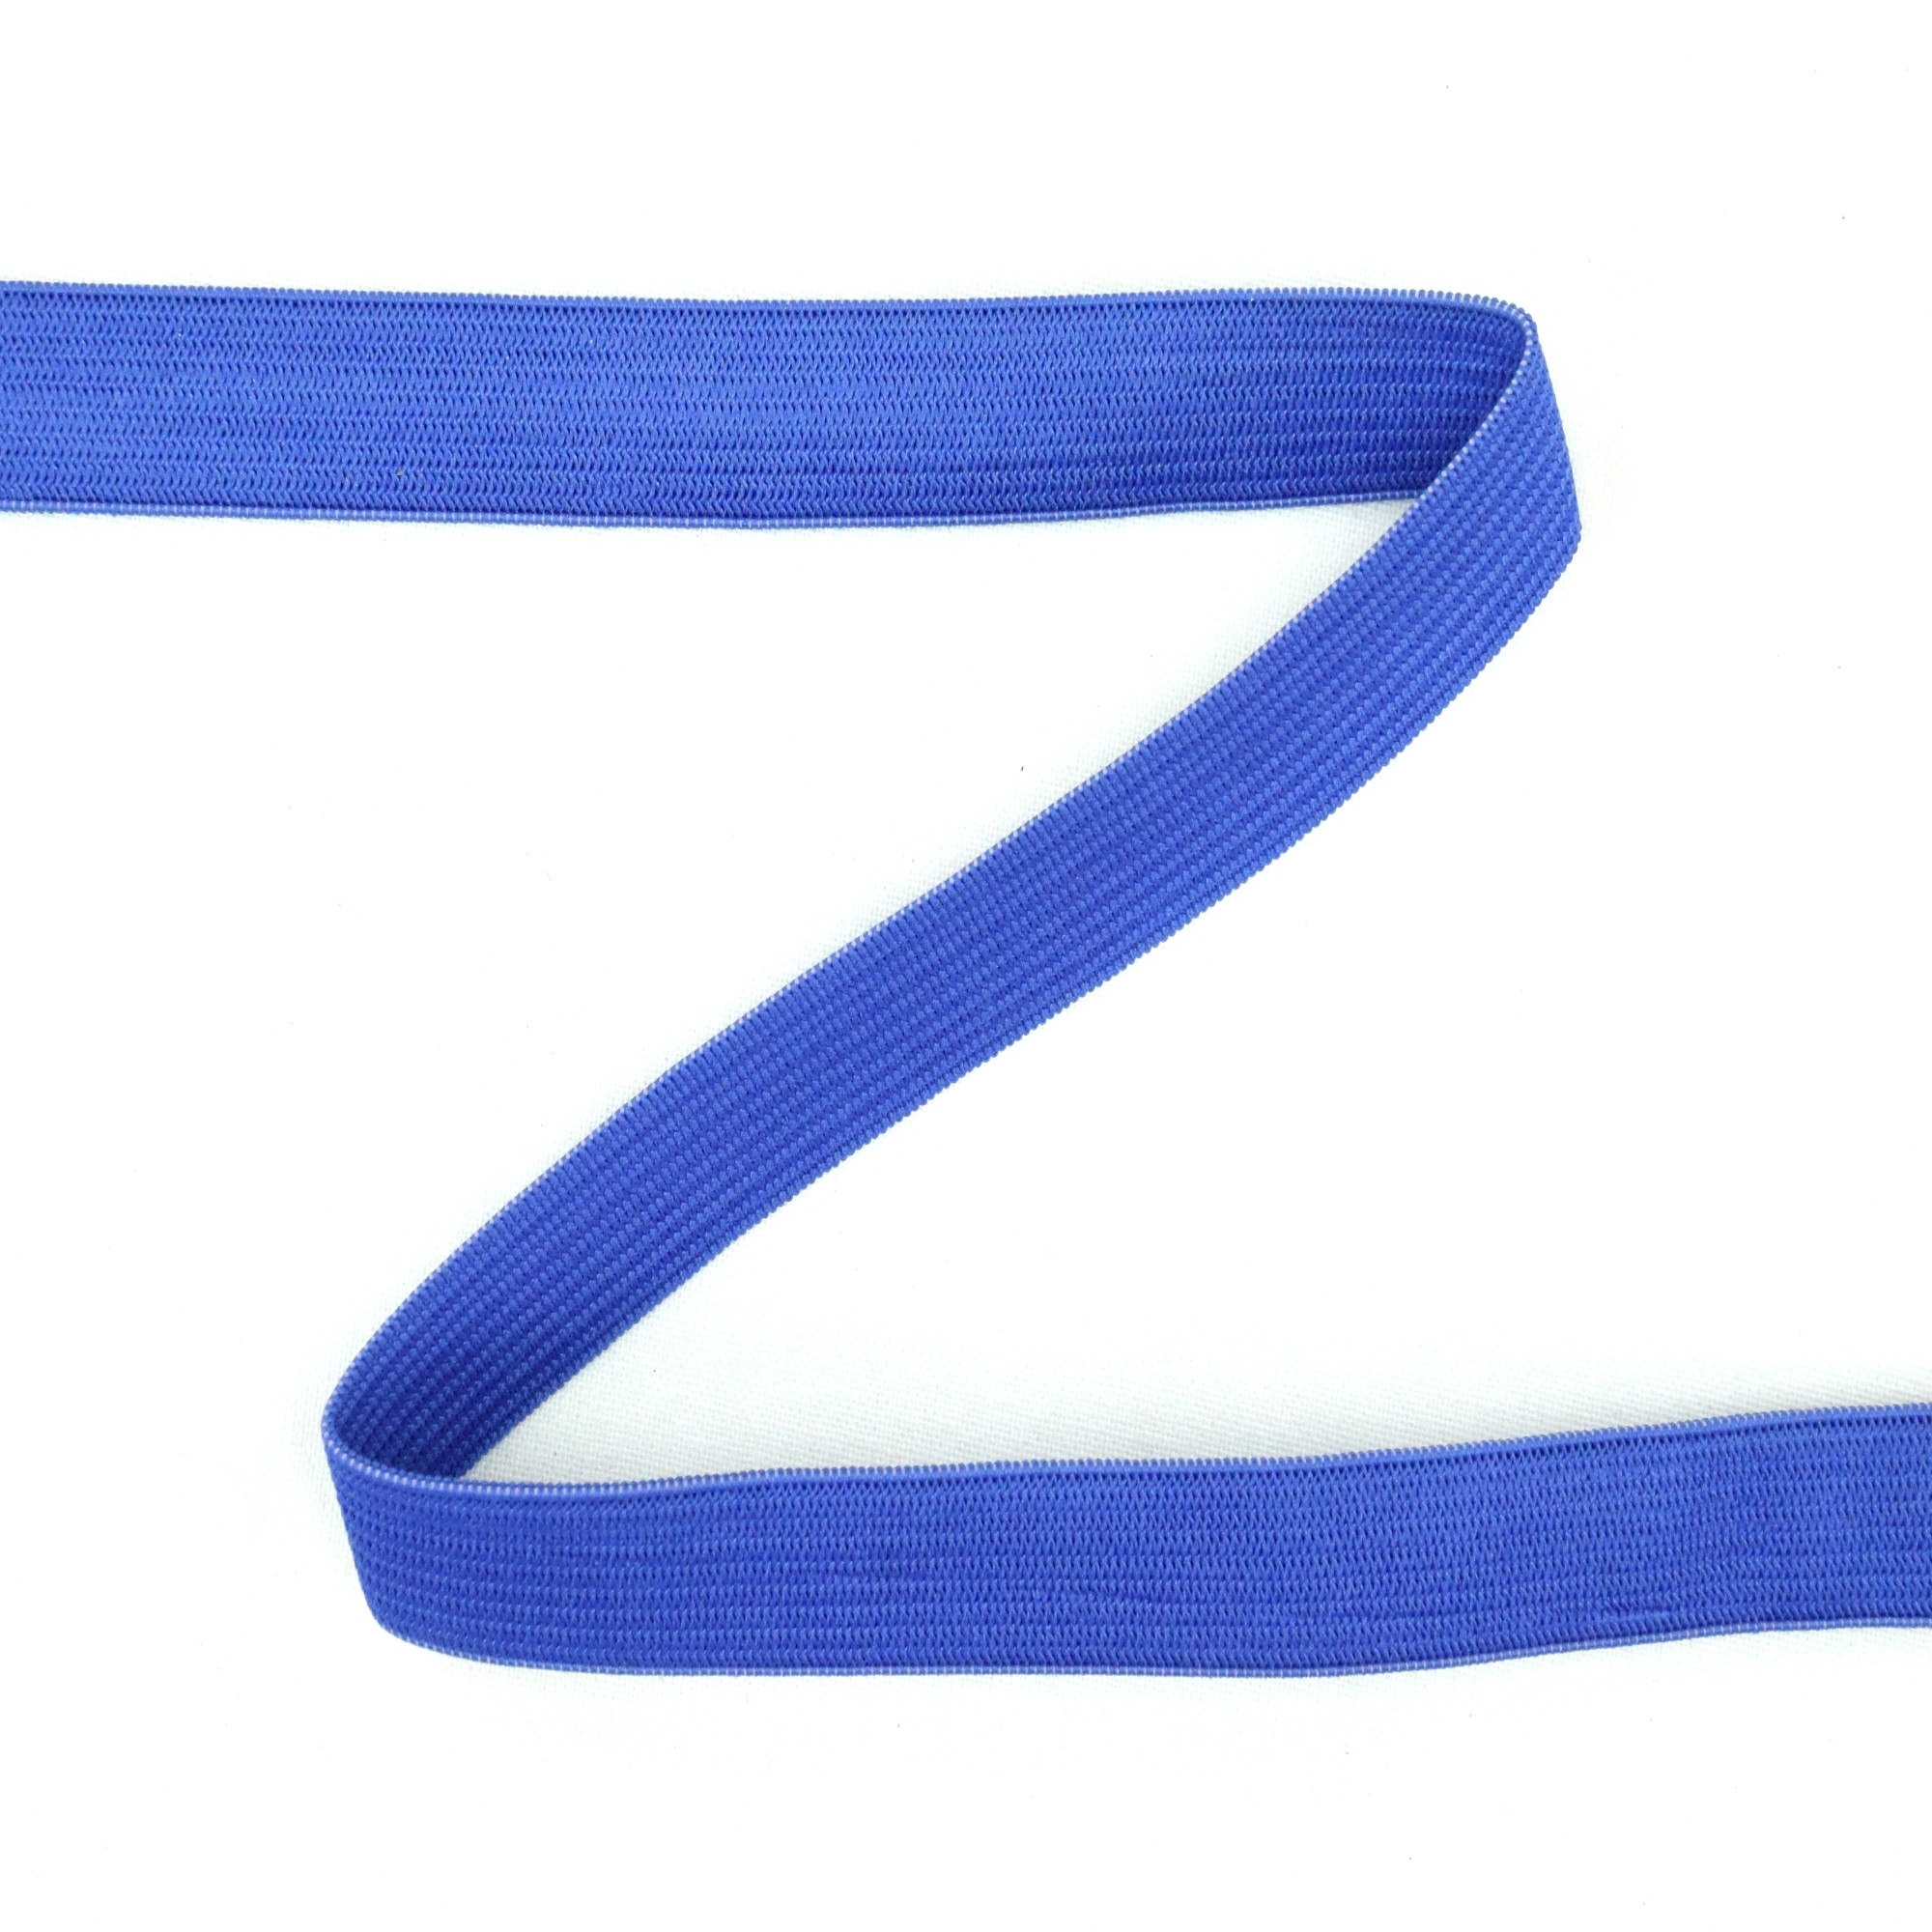 Gummiband Colour Line 15 mm, royalblau